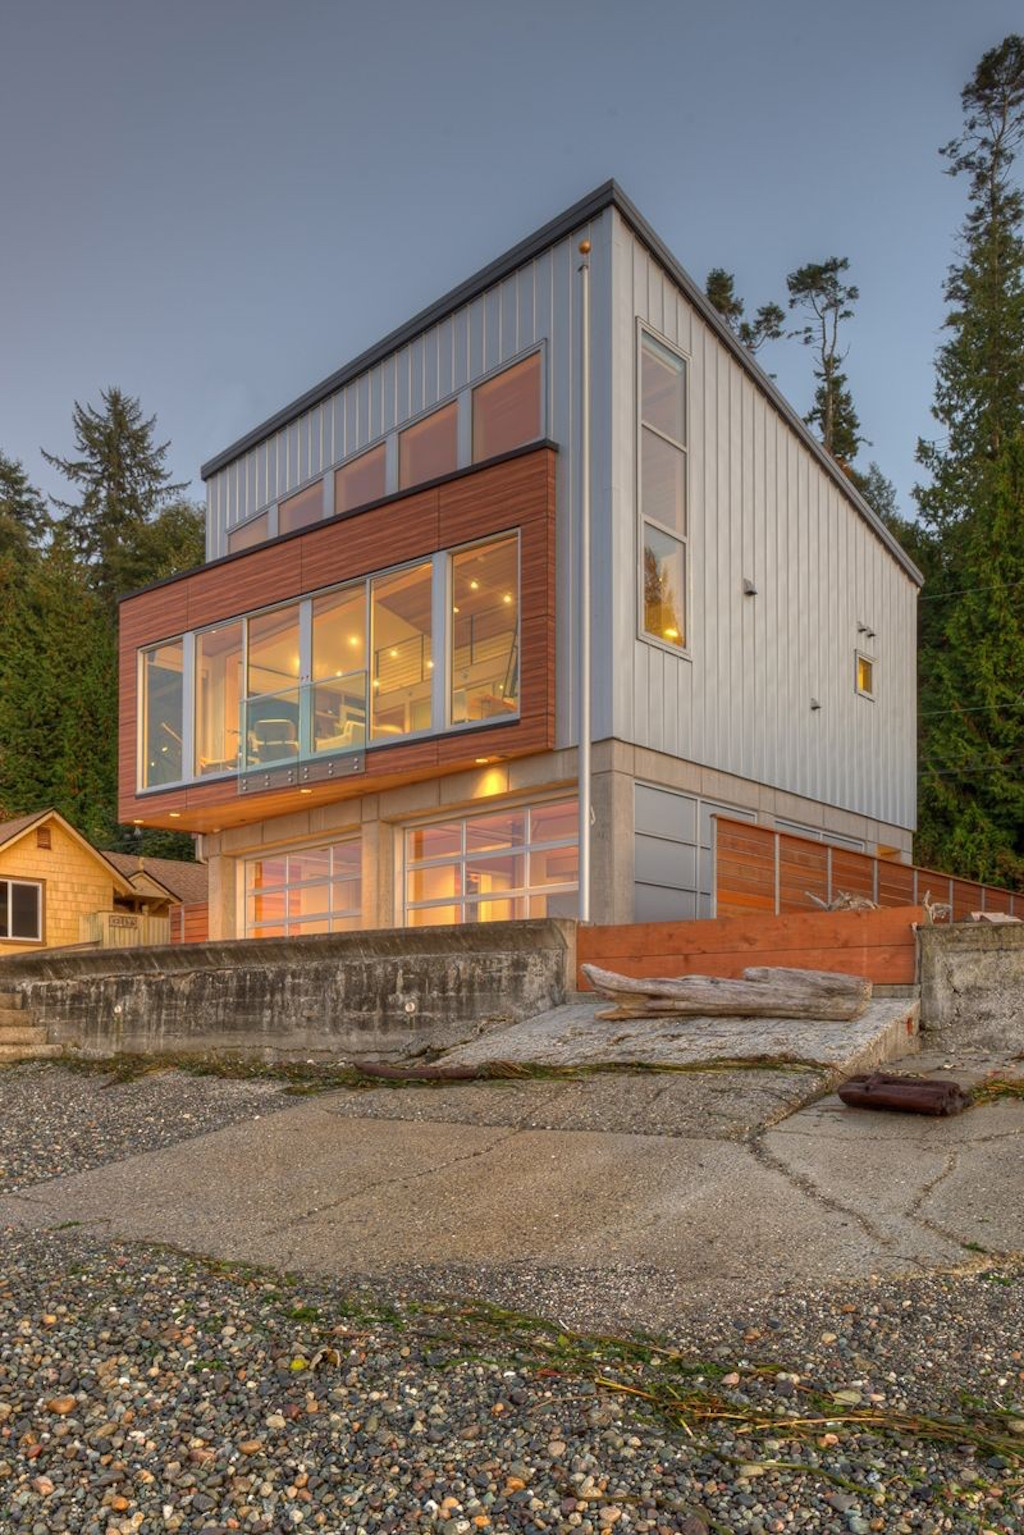 Tsunami house by designs northwest architect - Northwest home designs ...